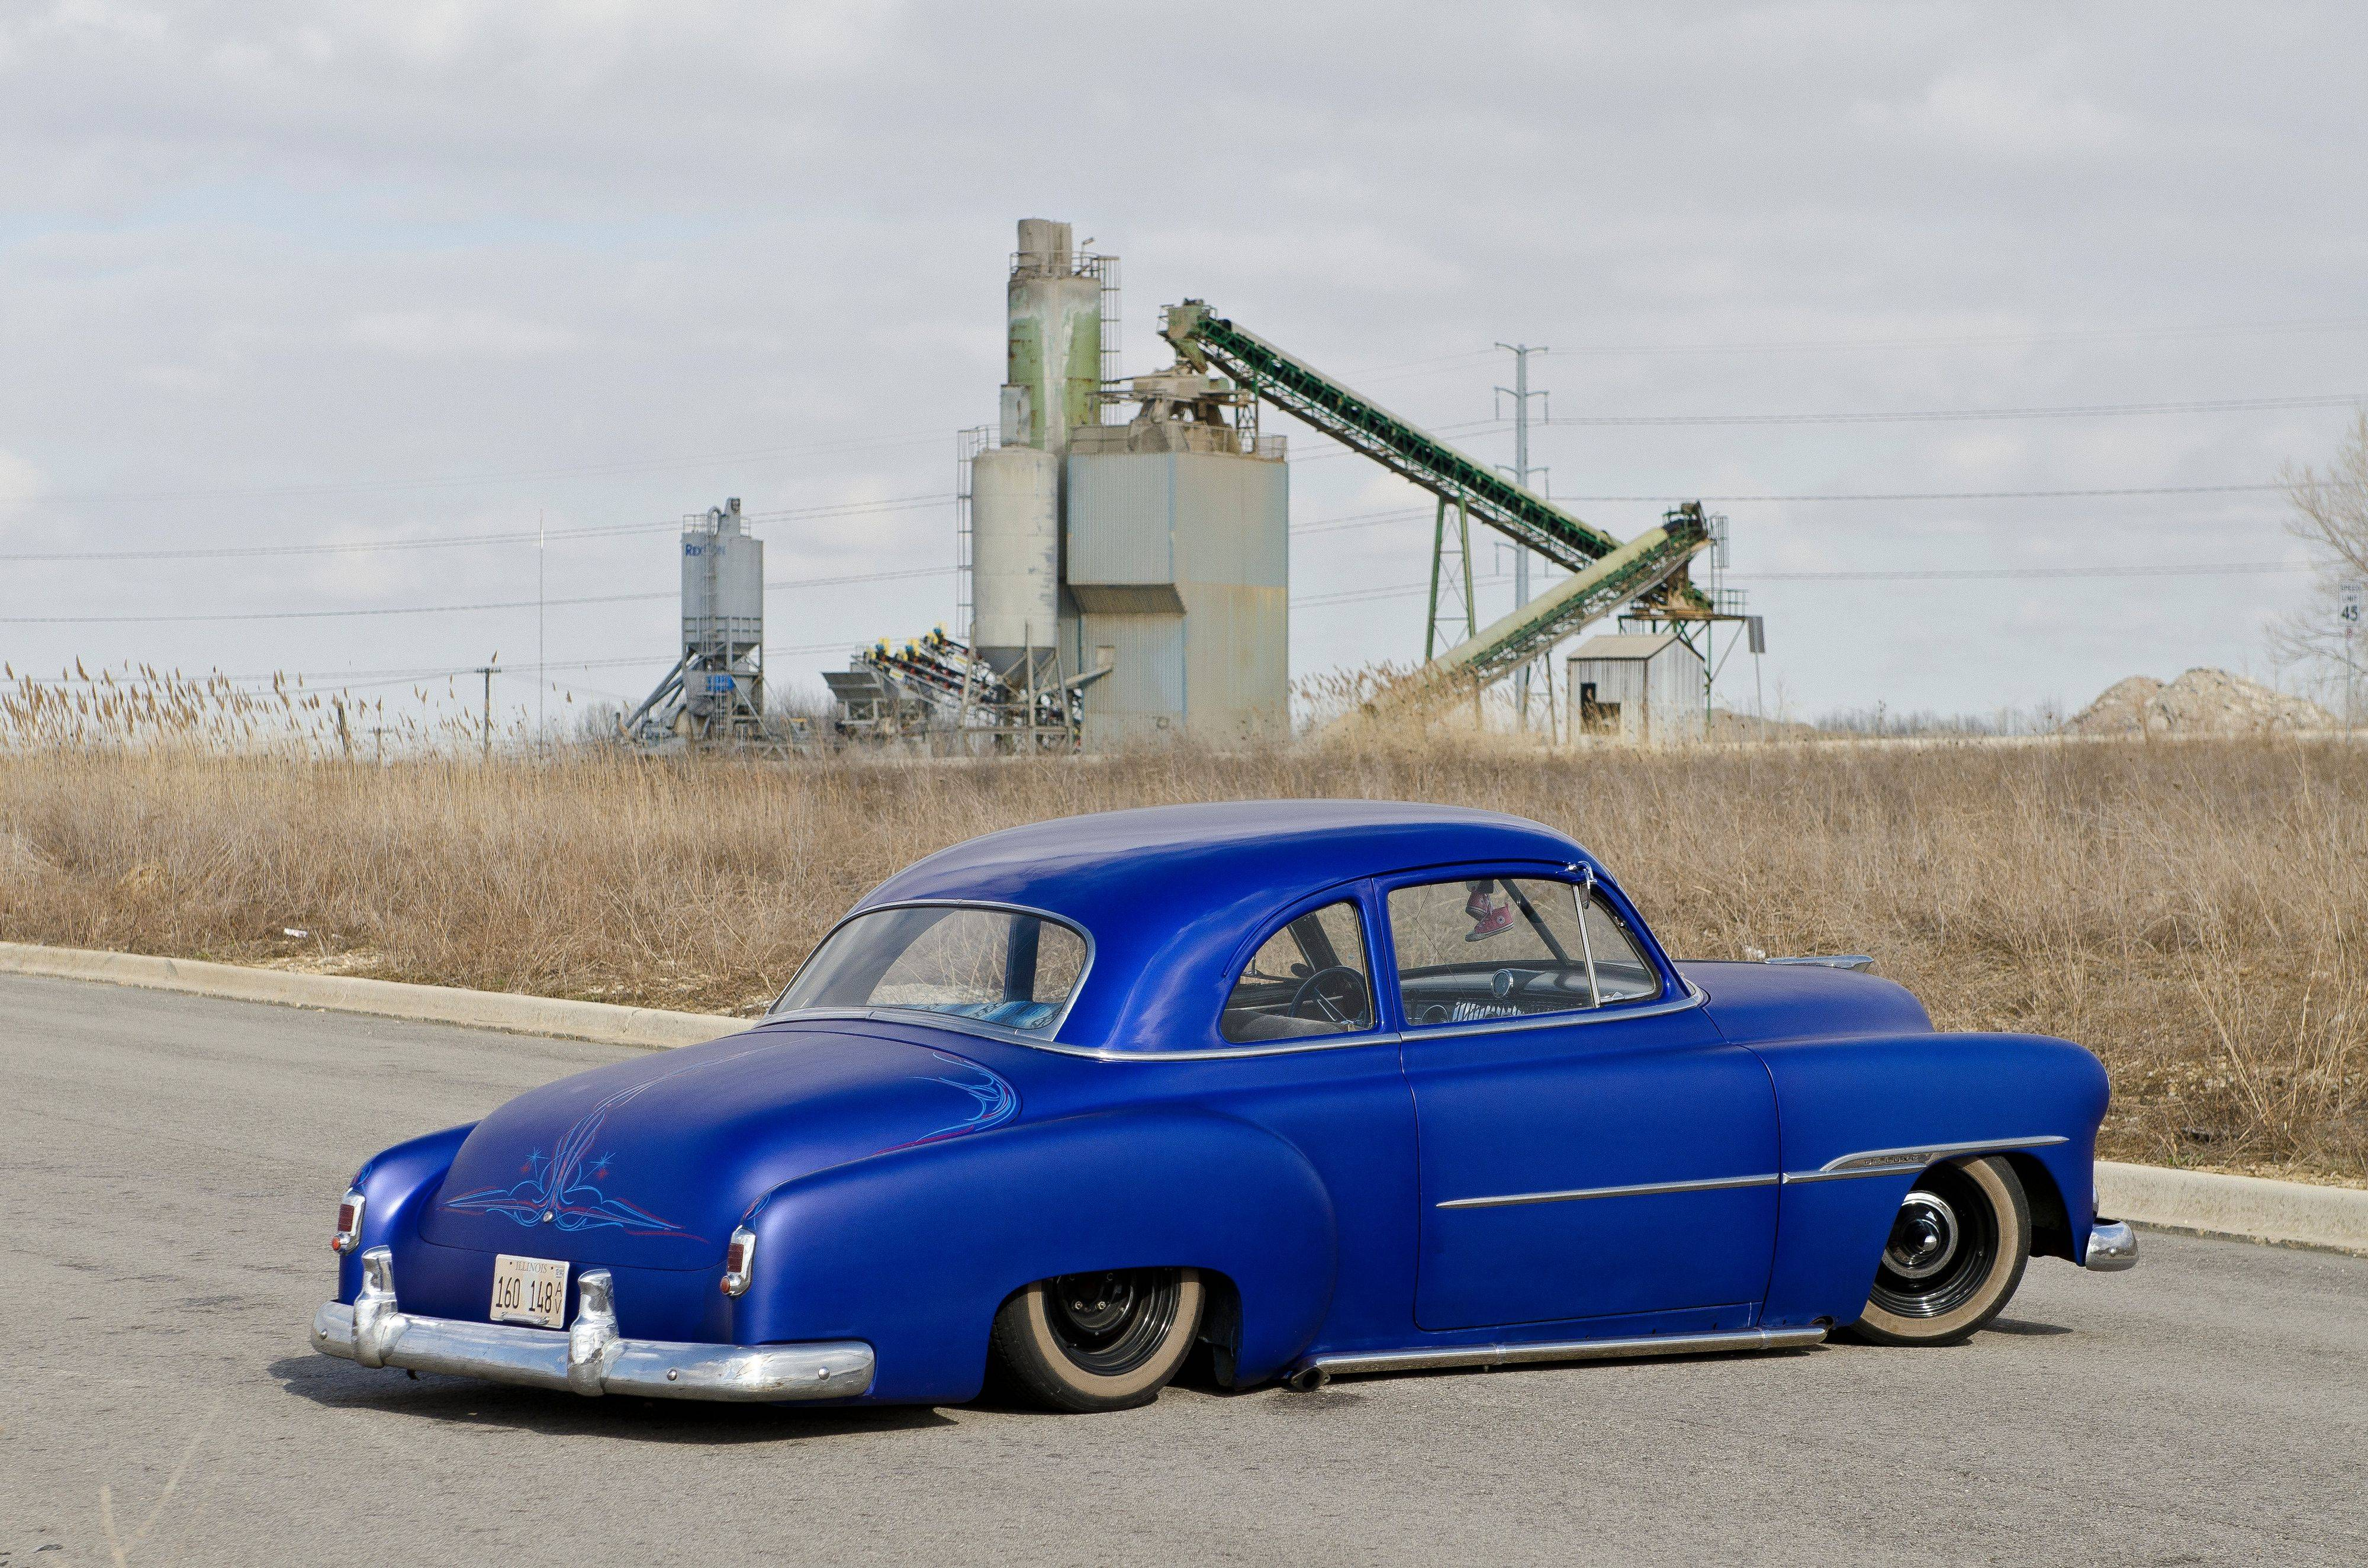 A 1951 Chevrolet coupe.